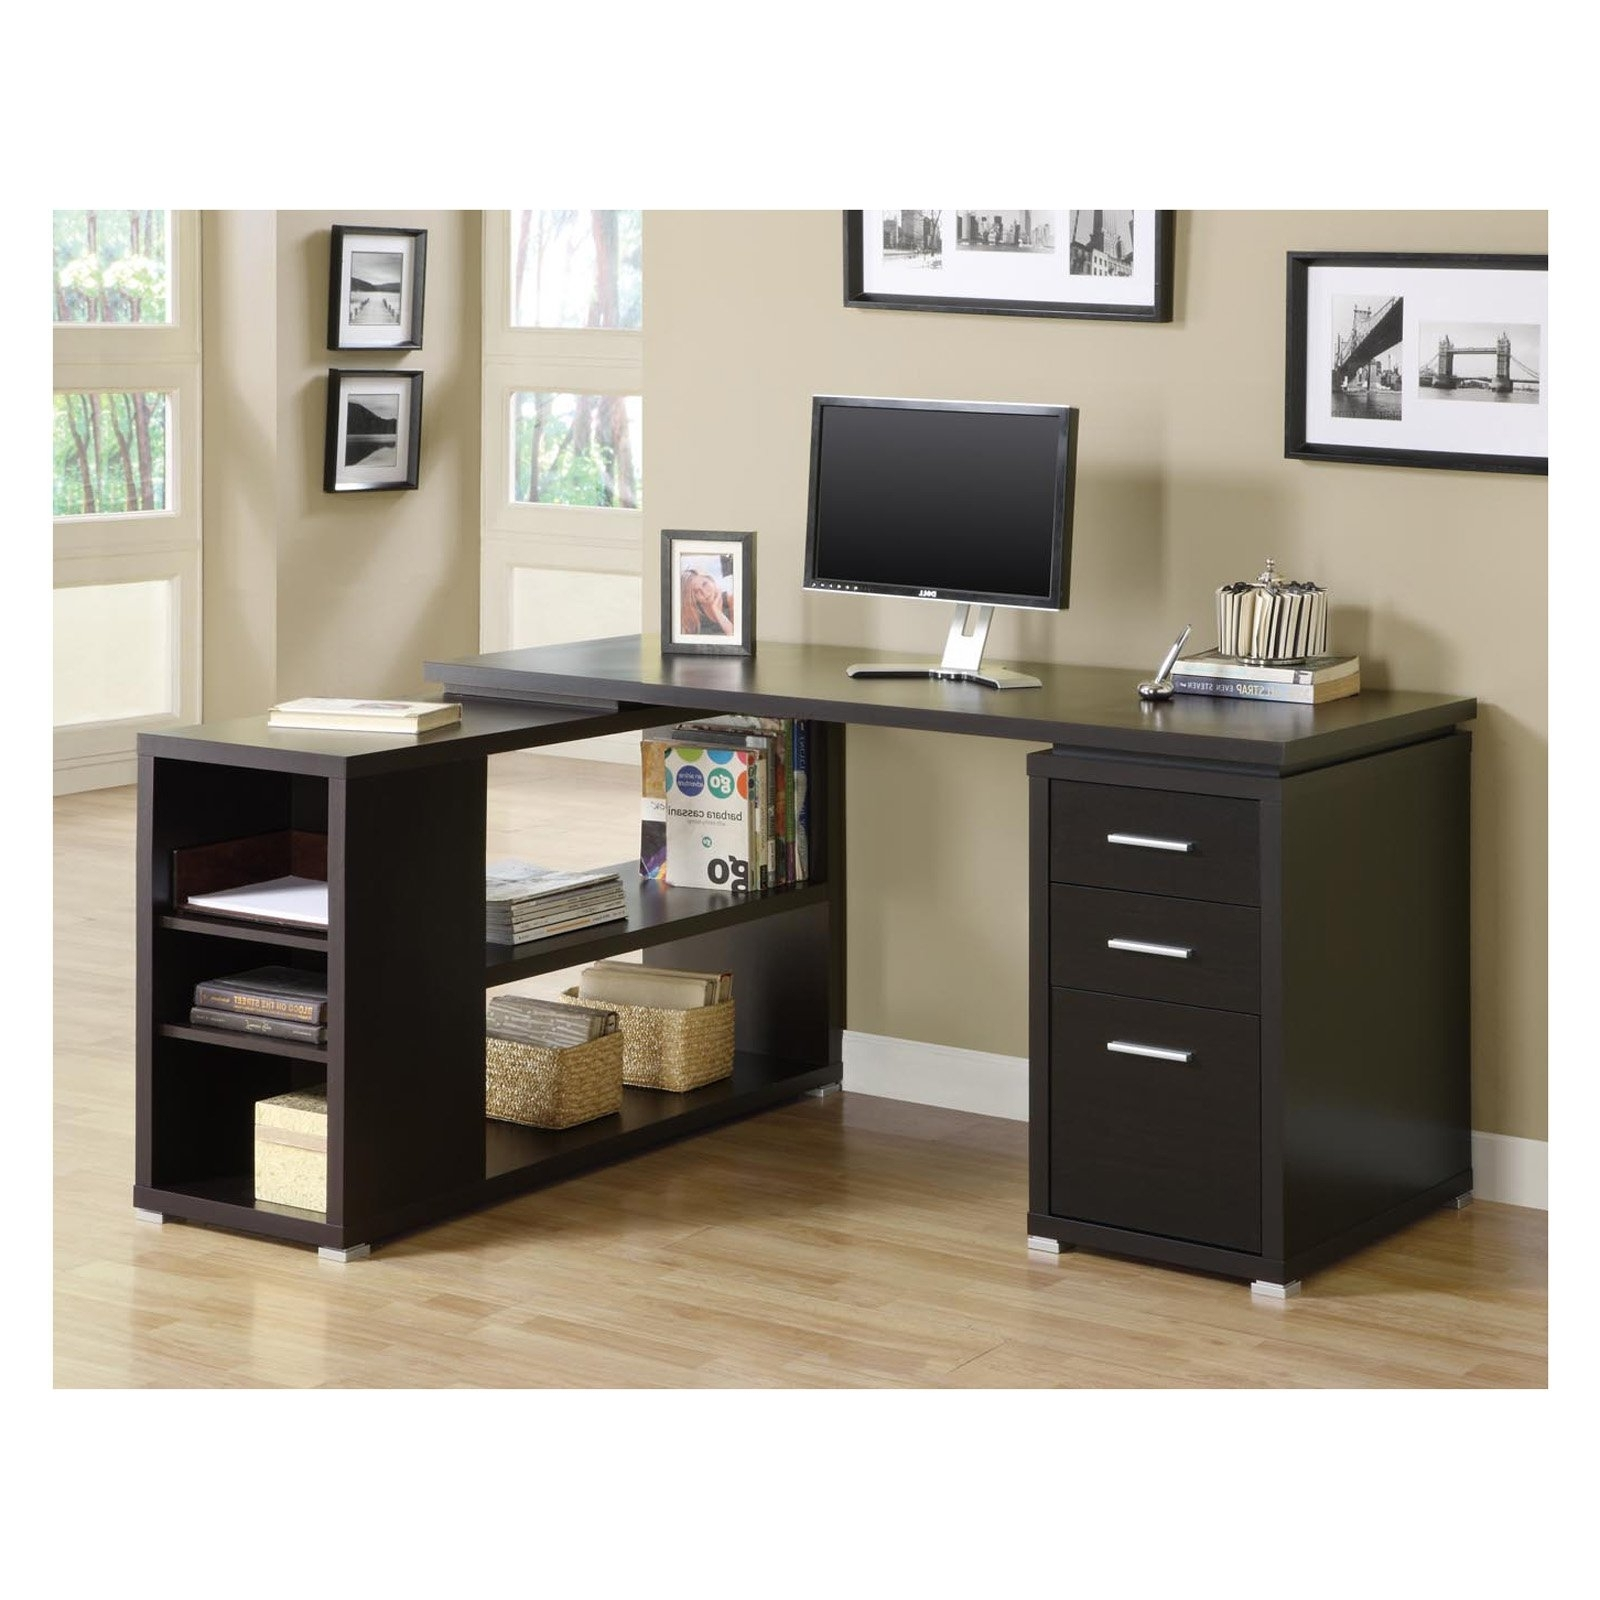 Most Popular Monarch Cappuccino Hollow Core L Shaped Computer Desk – Walmart Inside L Shaped Computer Desks (View 15 of 20)